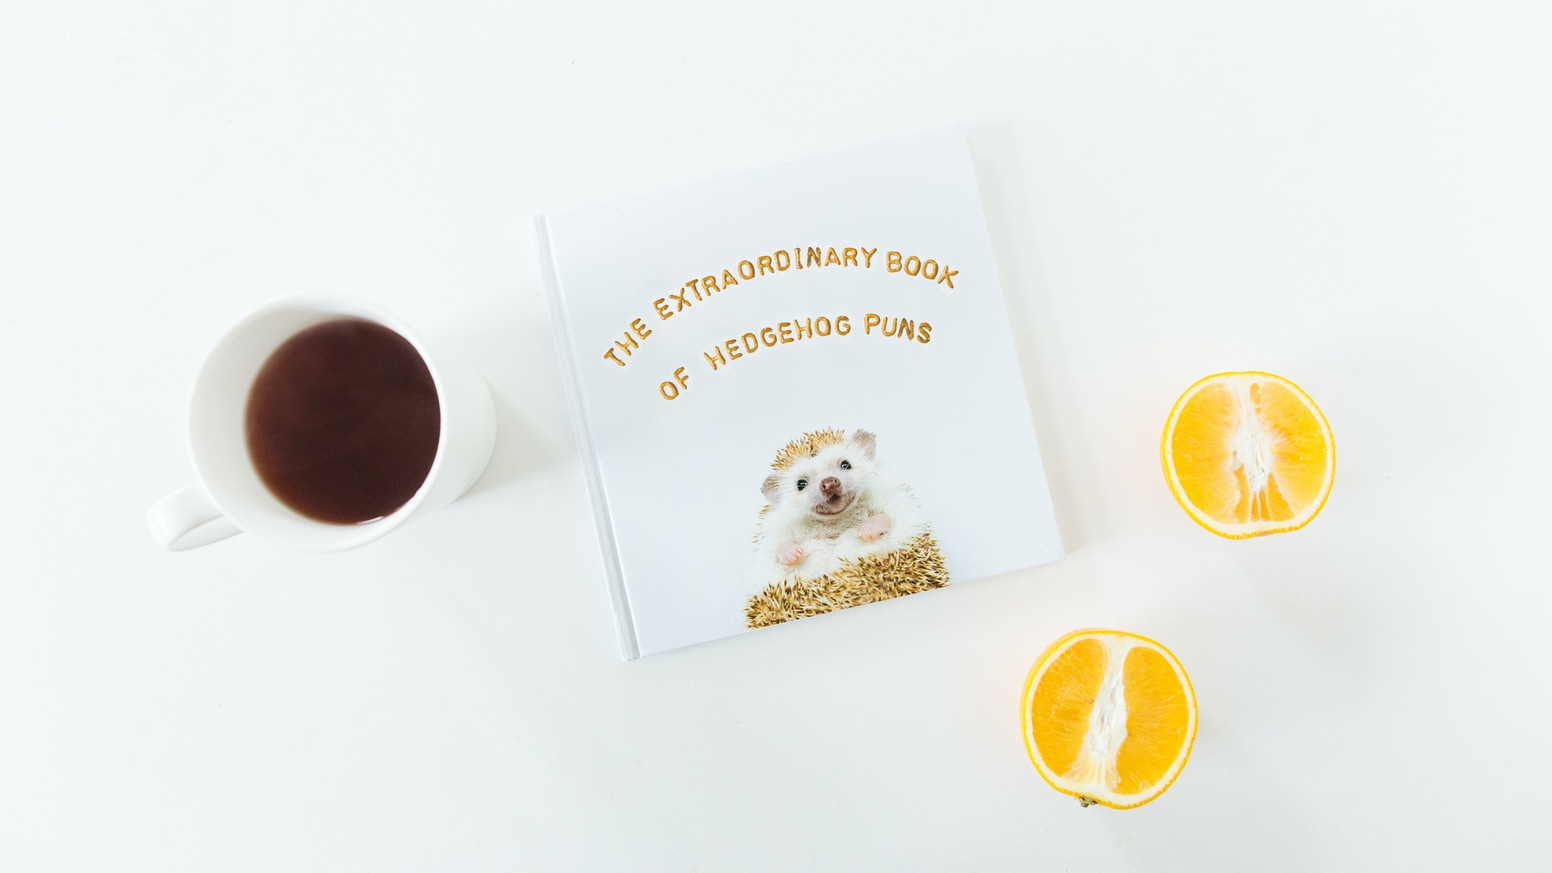 The Extraordinary Book of Hedgehog Puns by Sophia Hsin — Kickstarter